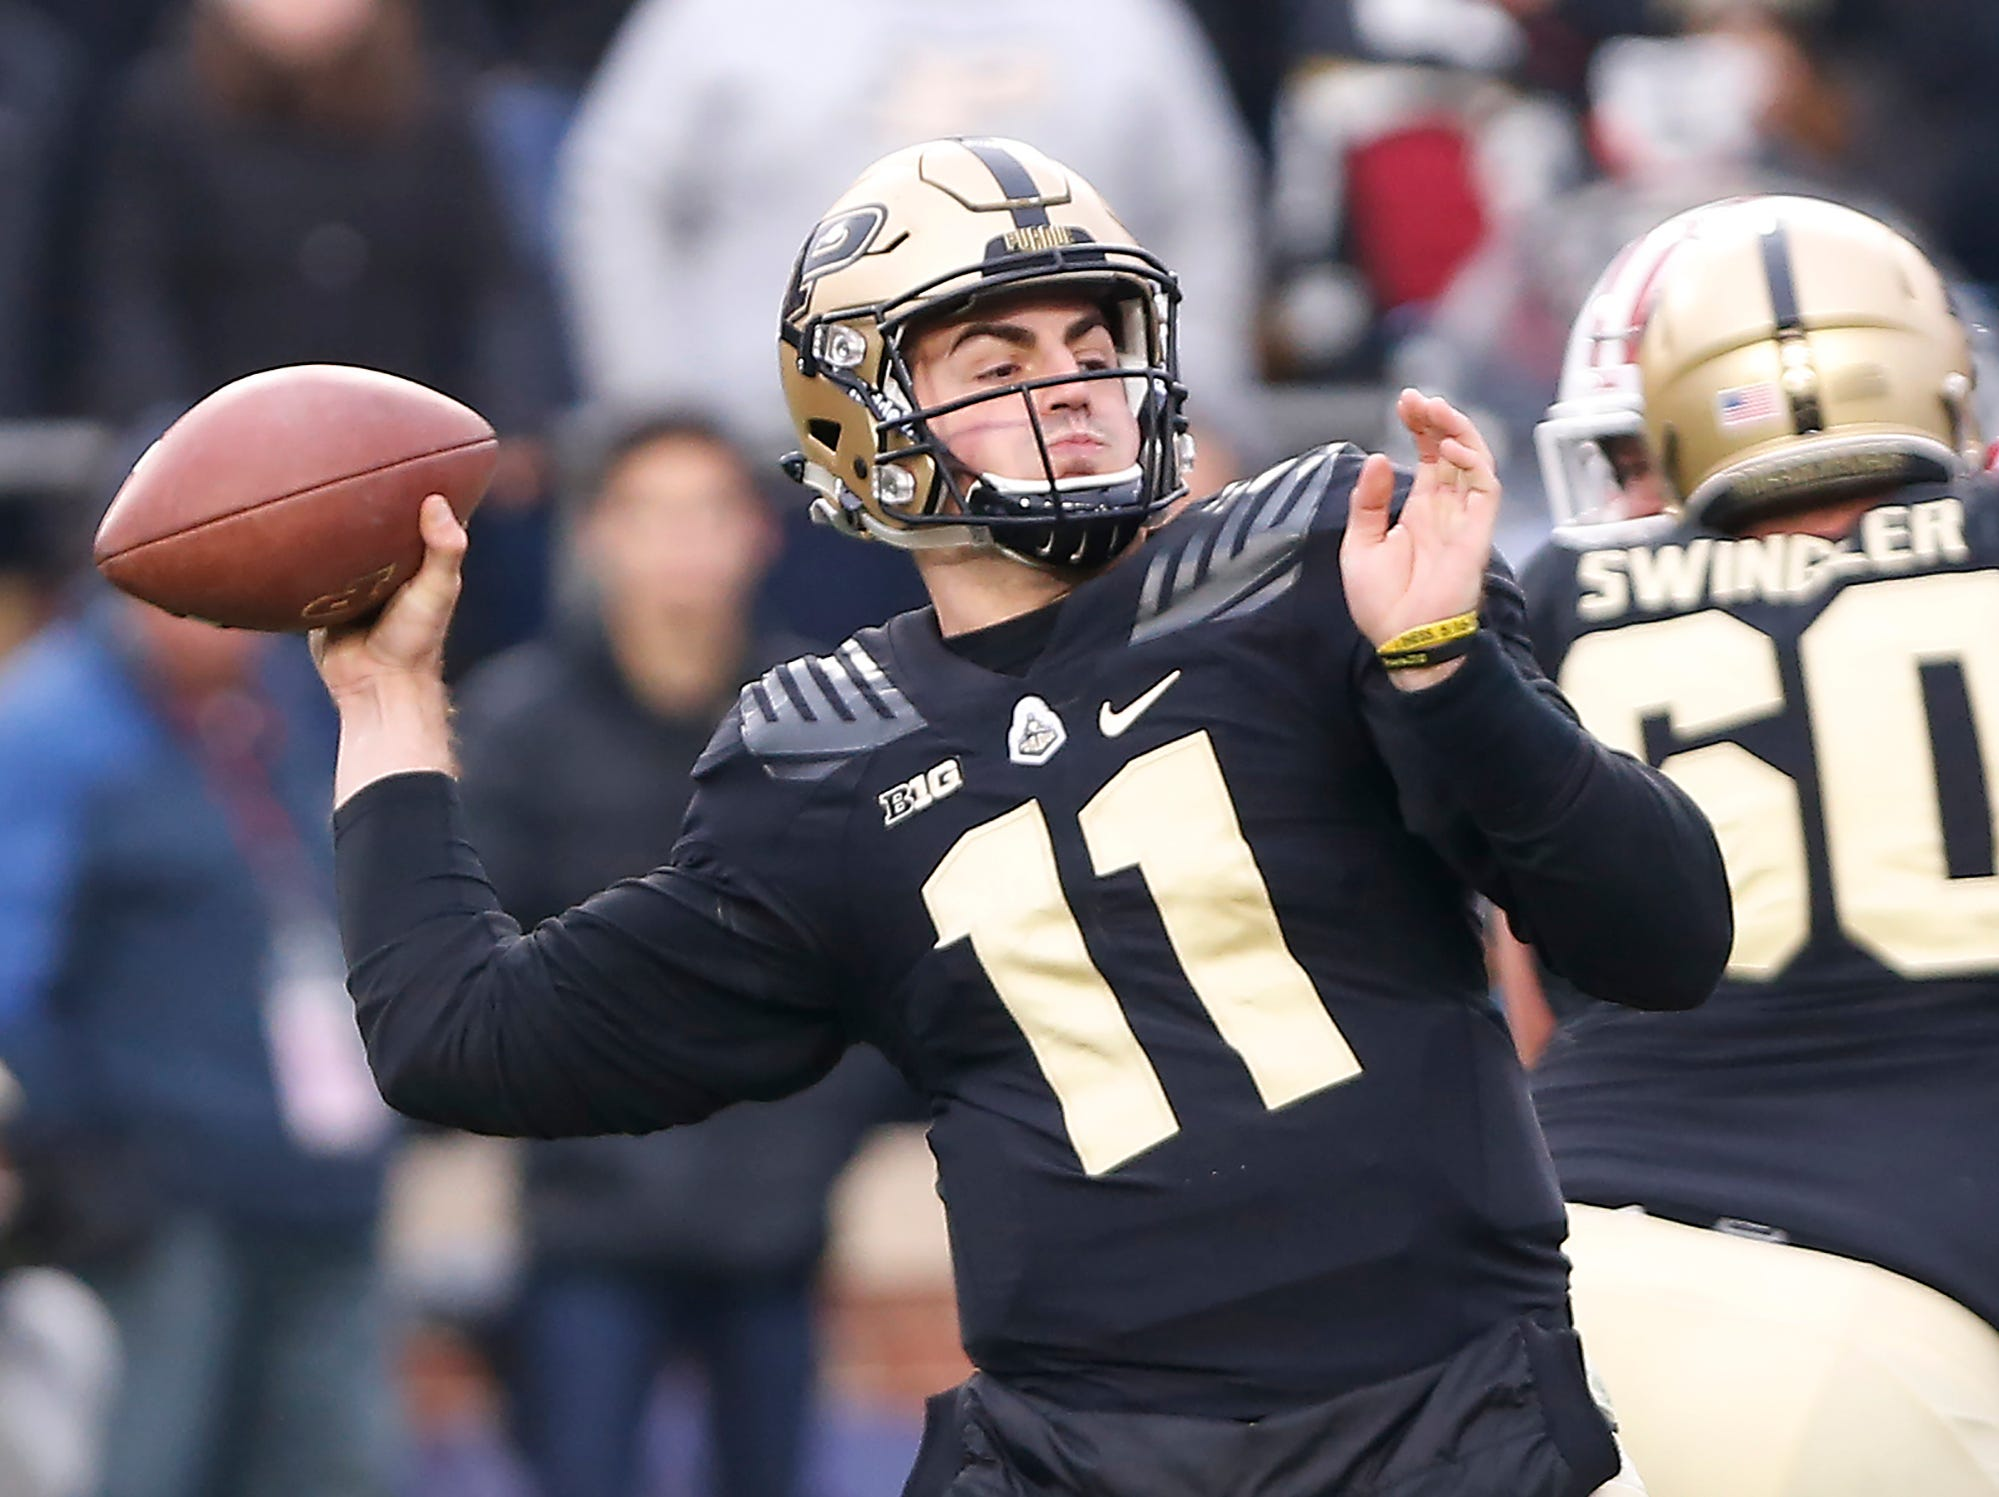 Purdue quarterback David Blough with a first half pass against Wisconsin Saturday, November 17, 2018, at Ross-Ade Stadium.